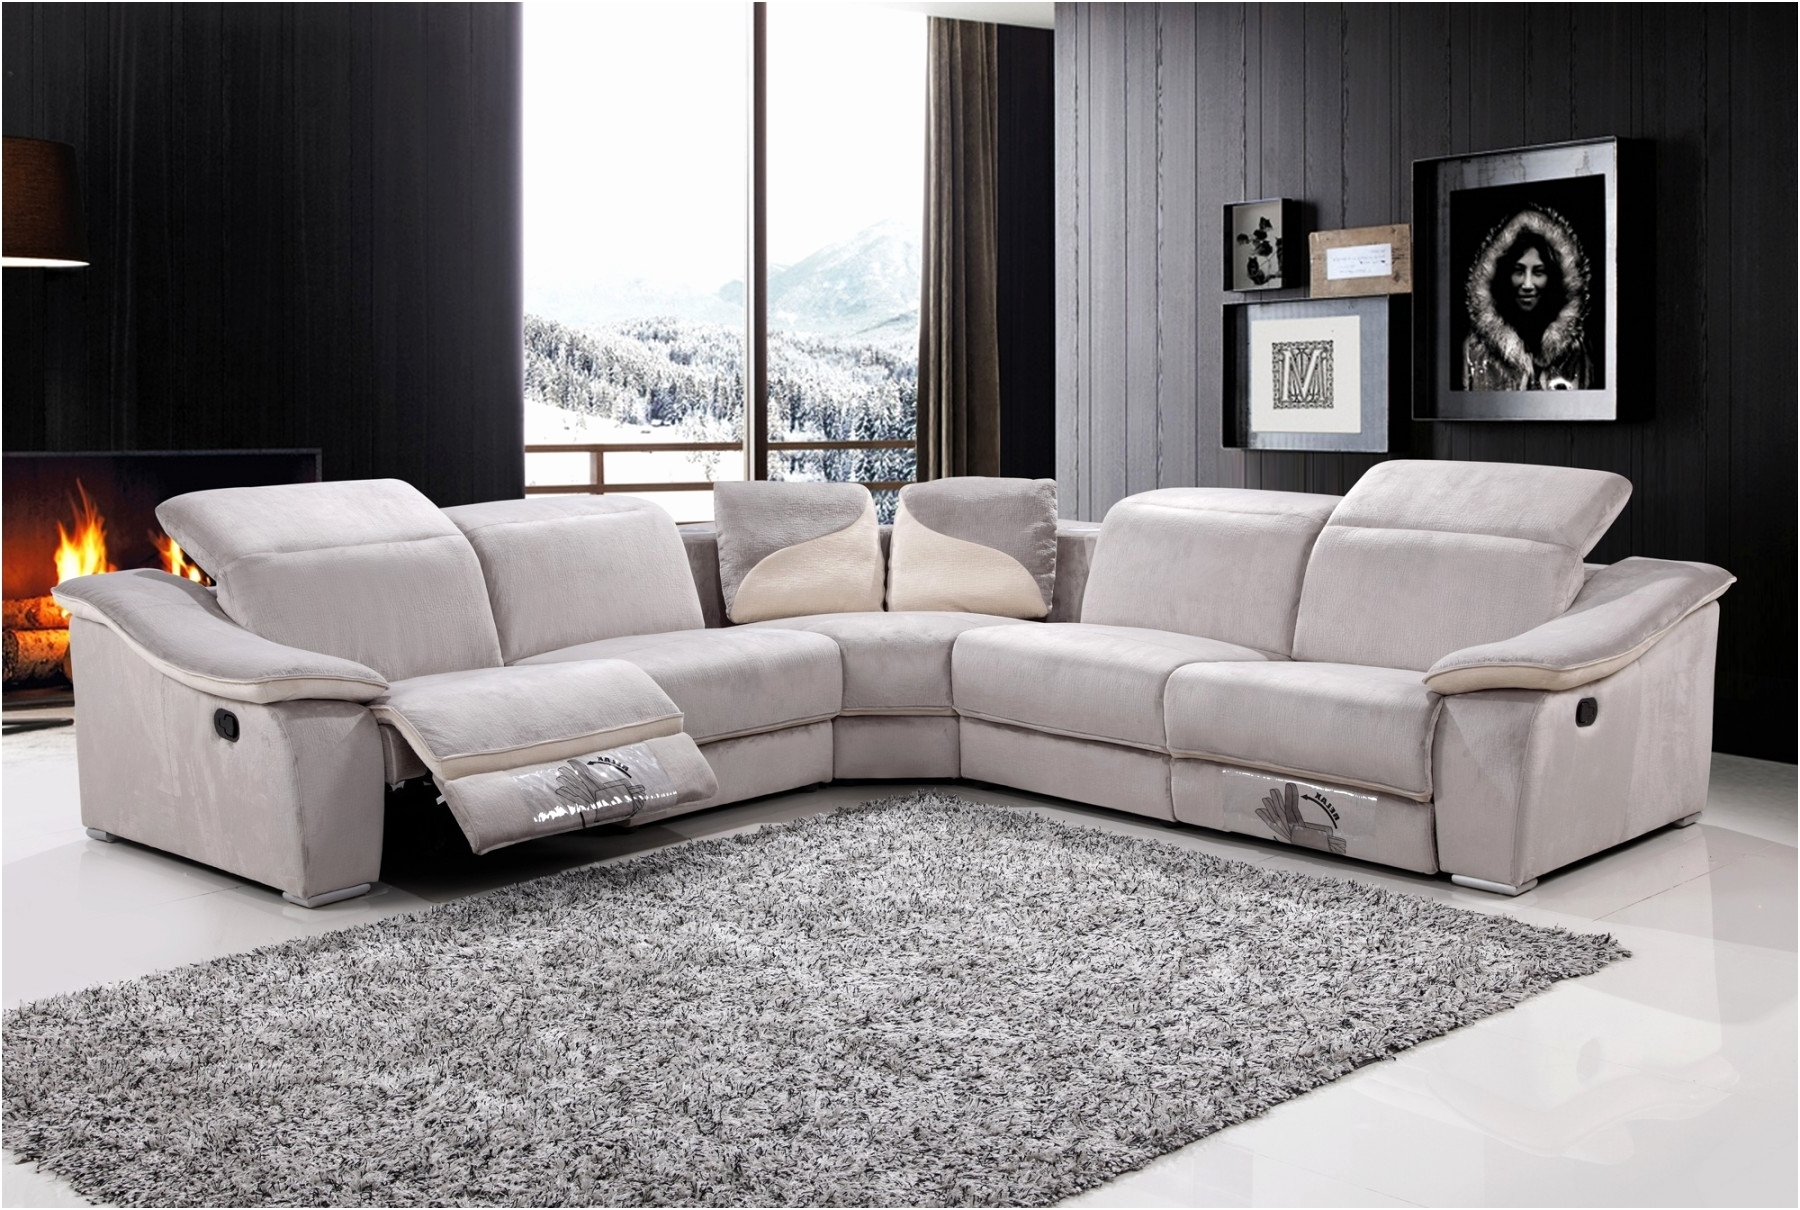 Most Popular Quality Sectional Sofas Pertaining To Unique Bay Area Sofa New – Intuisiblog (Gallery 17 of 20)